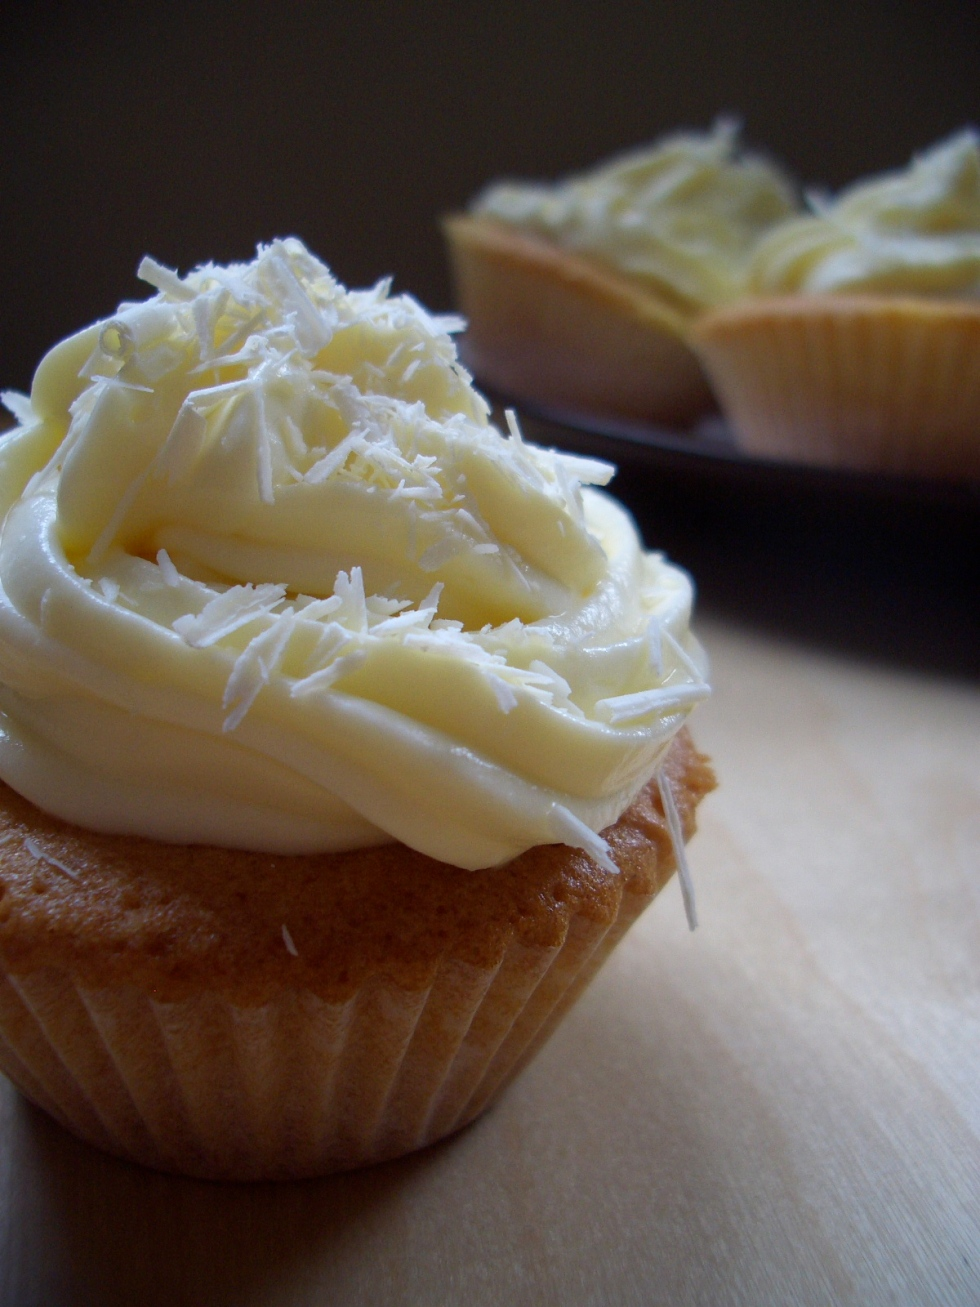 Vanilla_cupcakes_with_lemon_and_mascarpone_frosting_and_white_chocolate_curls,_detail